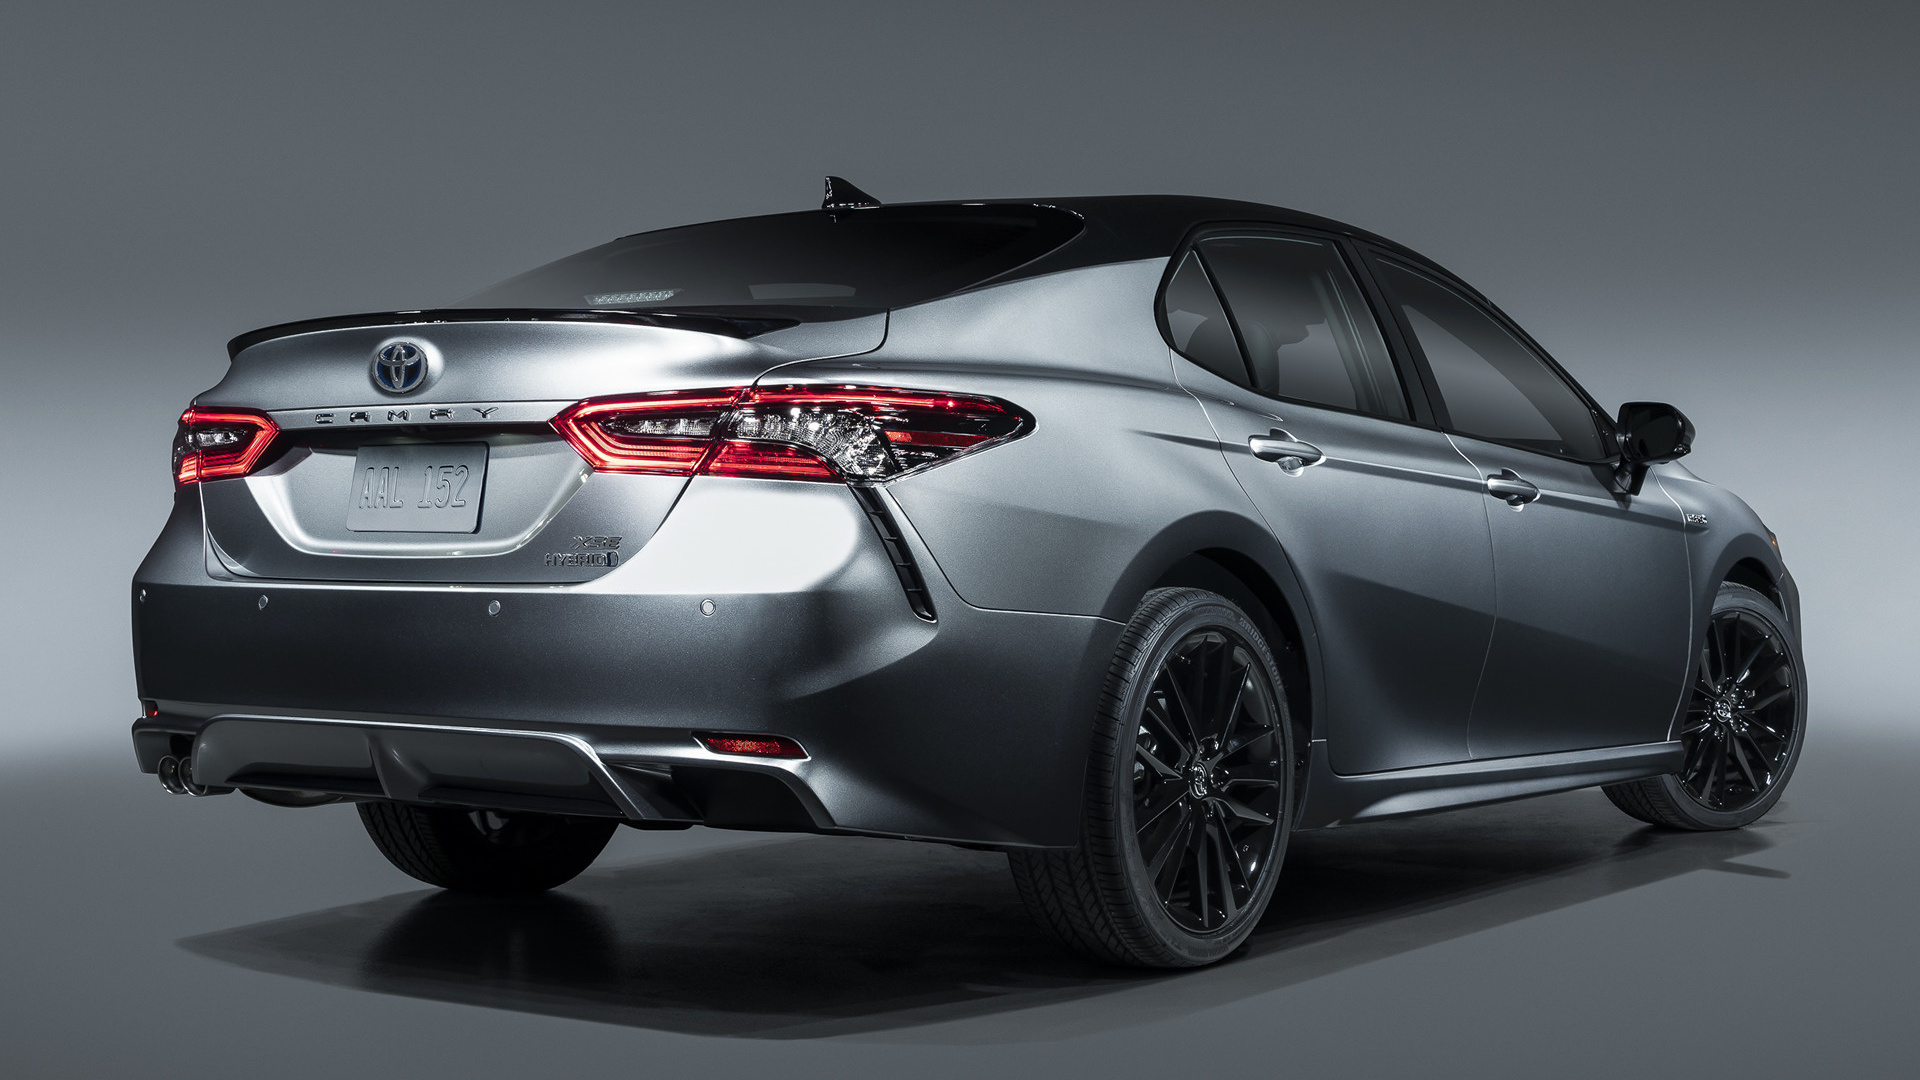 2021 Toyota Camry Hybrid Sport Styling - Wallpapers and HD ...